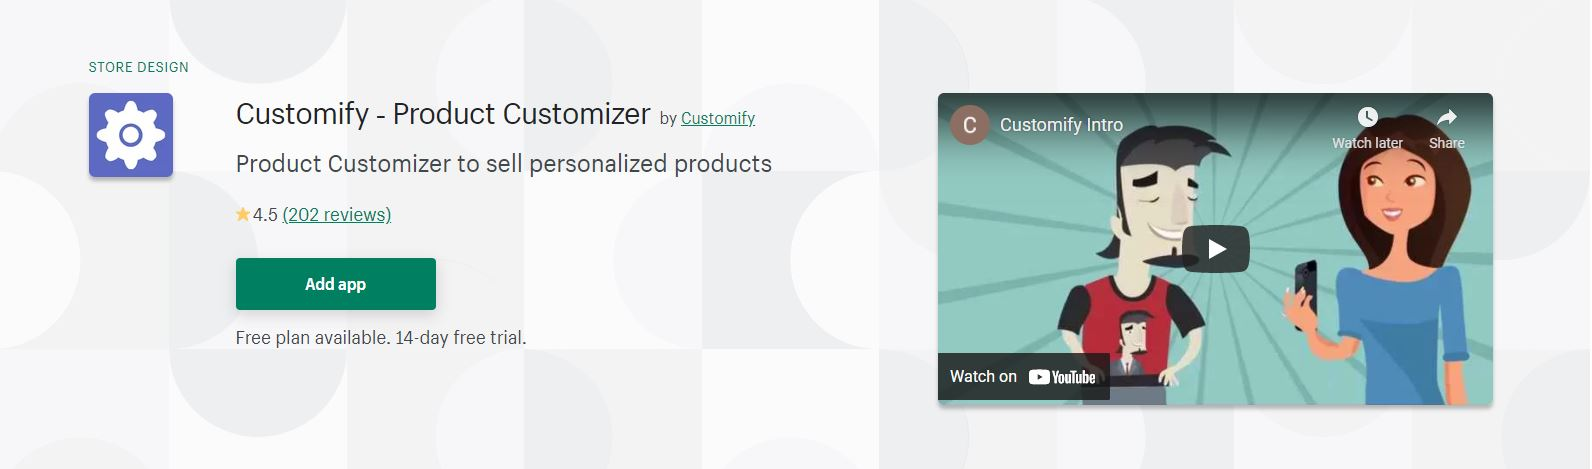 Customify ‑ Product Customizer